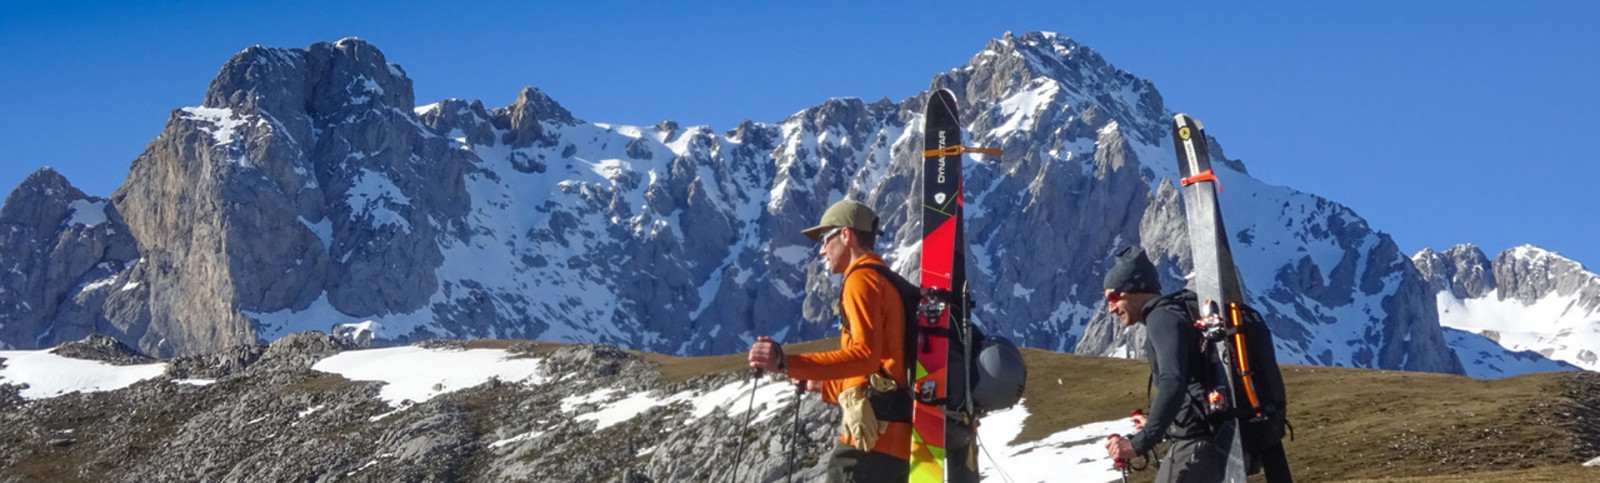 Skiing in the Picos D' Europa